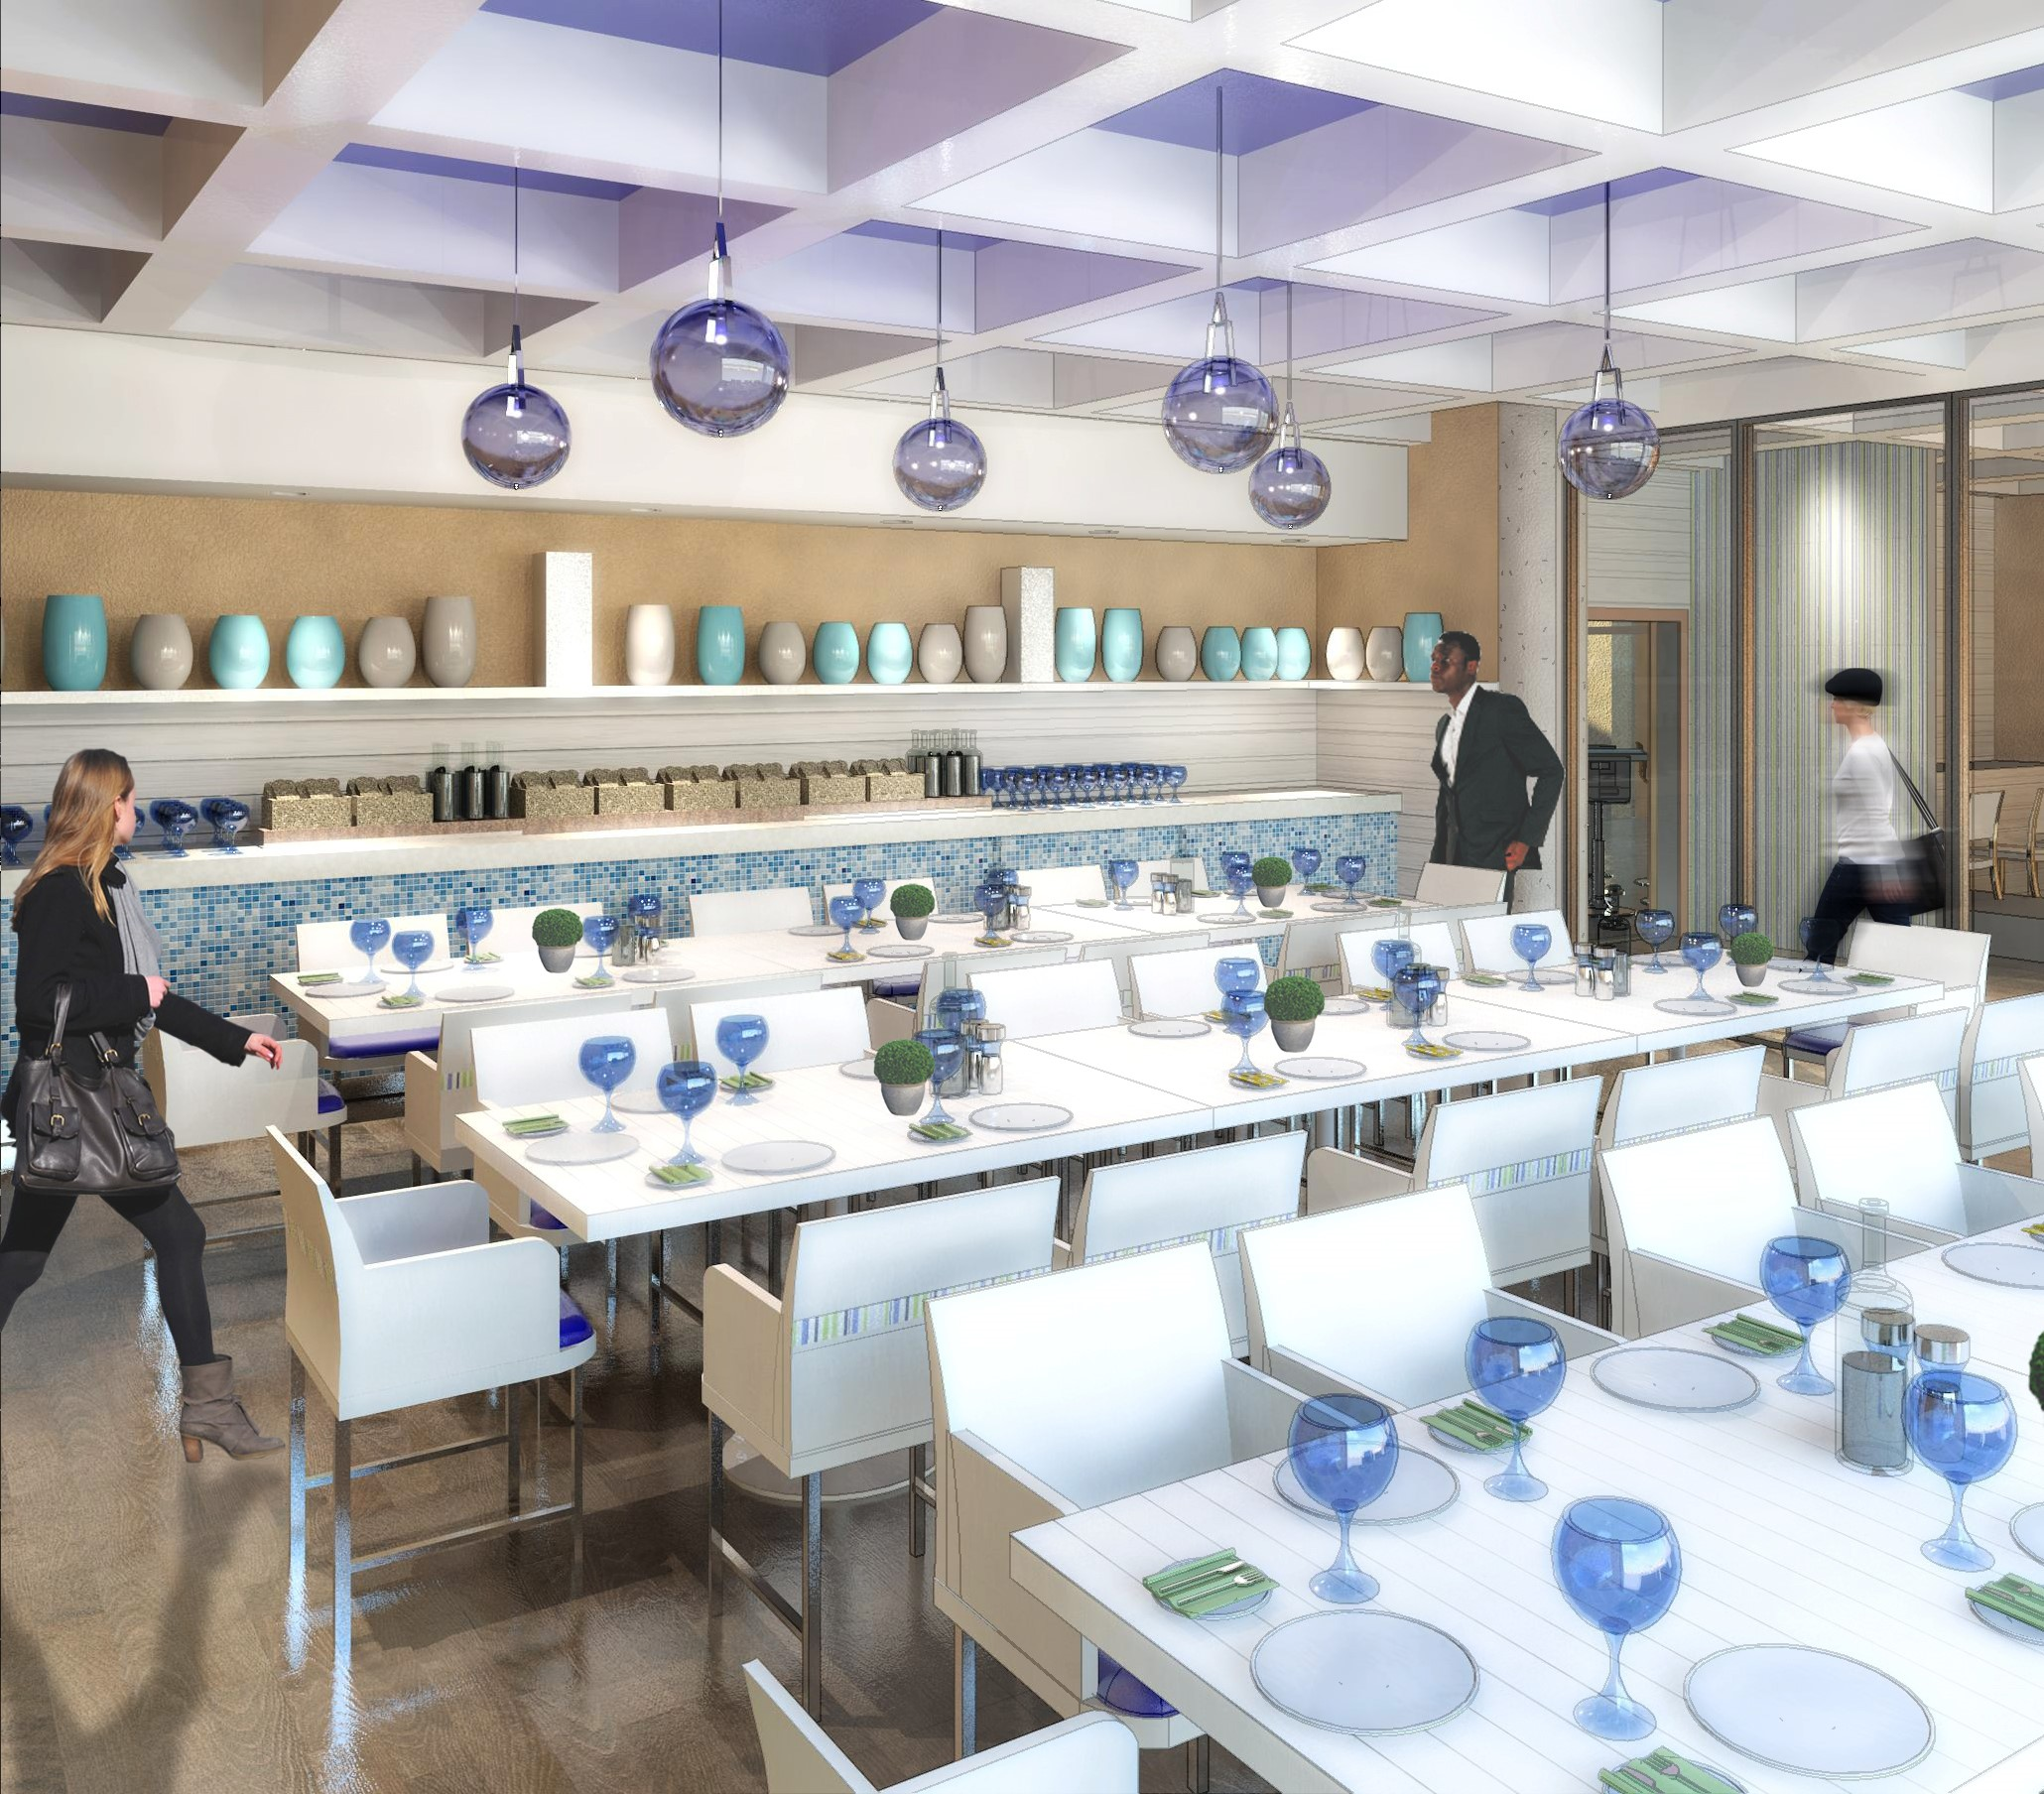 Interior Design - Dining Facility Image